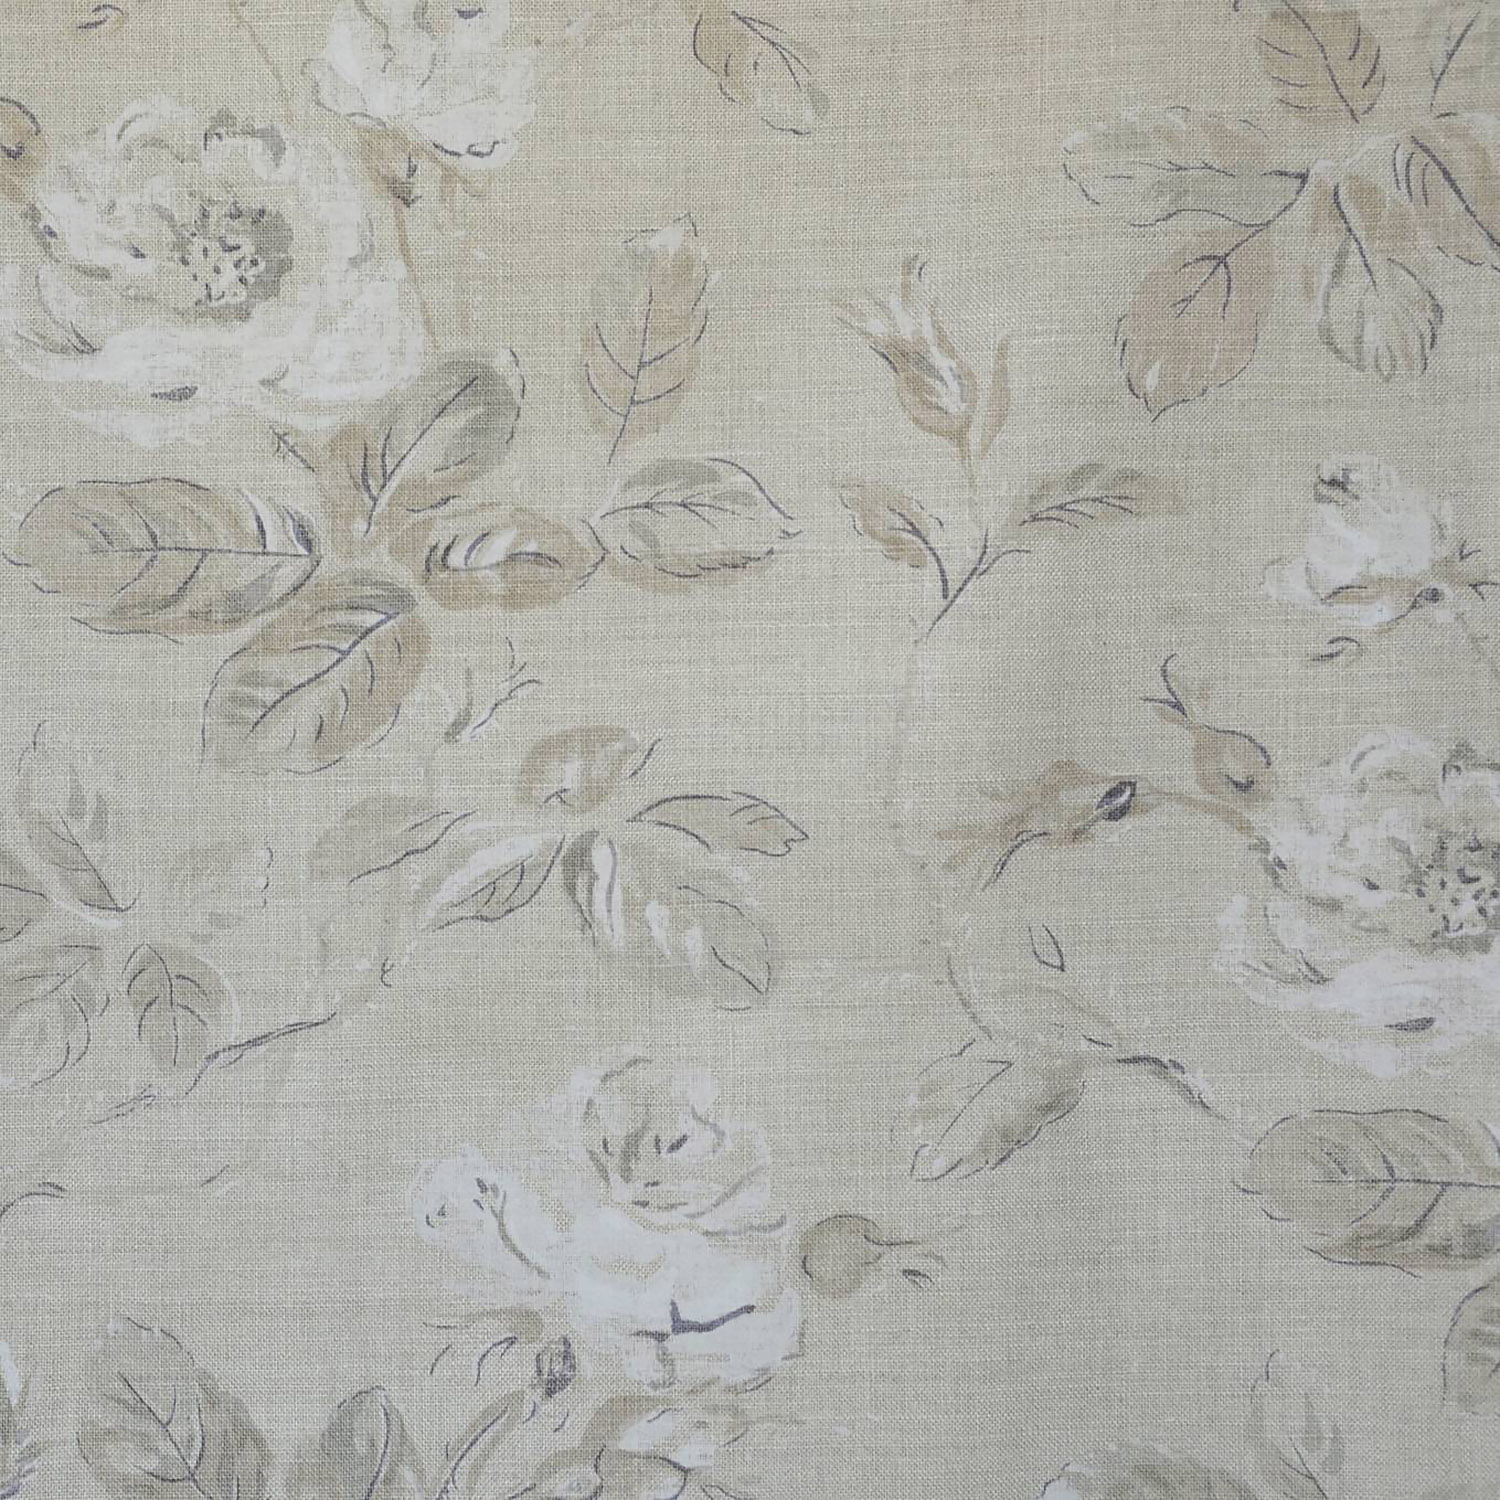 <p><strong>MARLOW</strong>taupe/white/natural 9800-04<a href=/collection-3/marlow-taupe-white-natural-9800-04>More →</a></p>